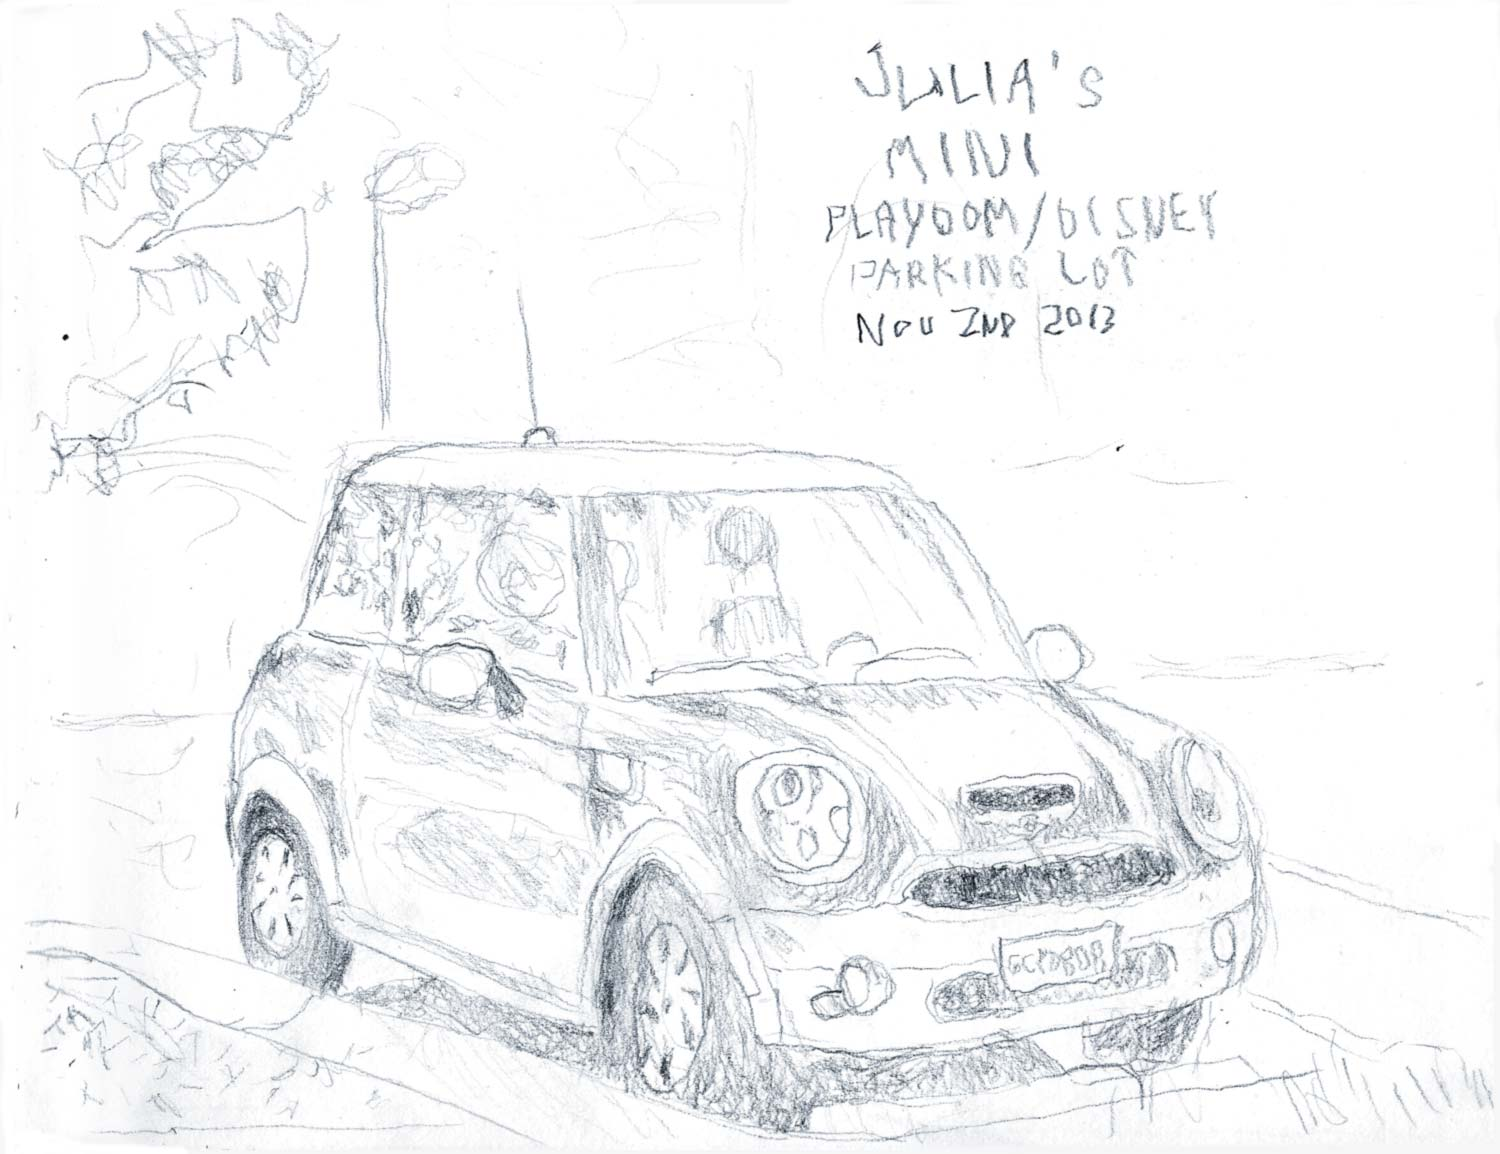 Julias_mini_sketch